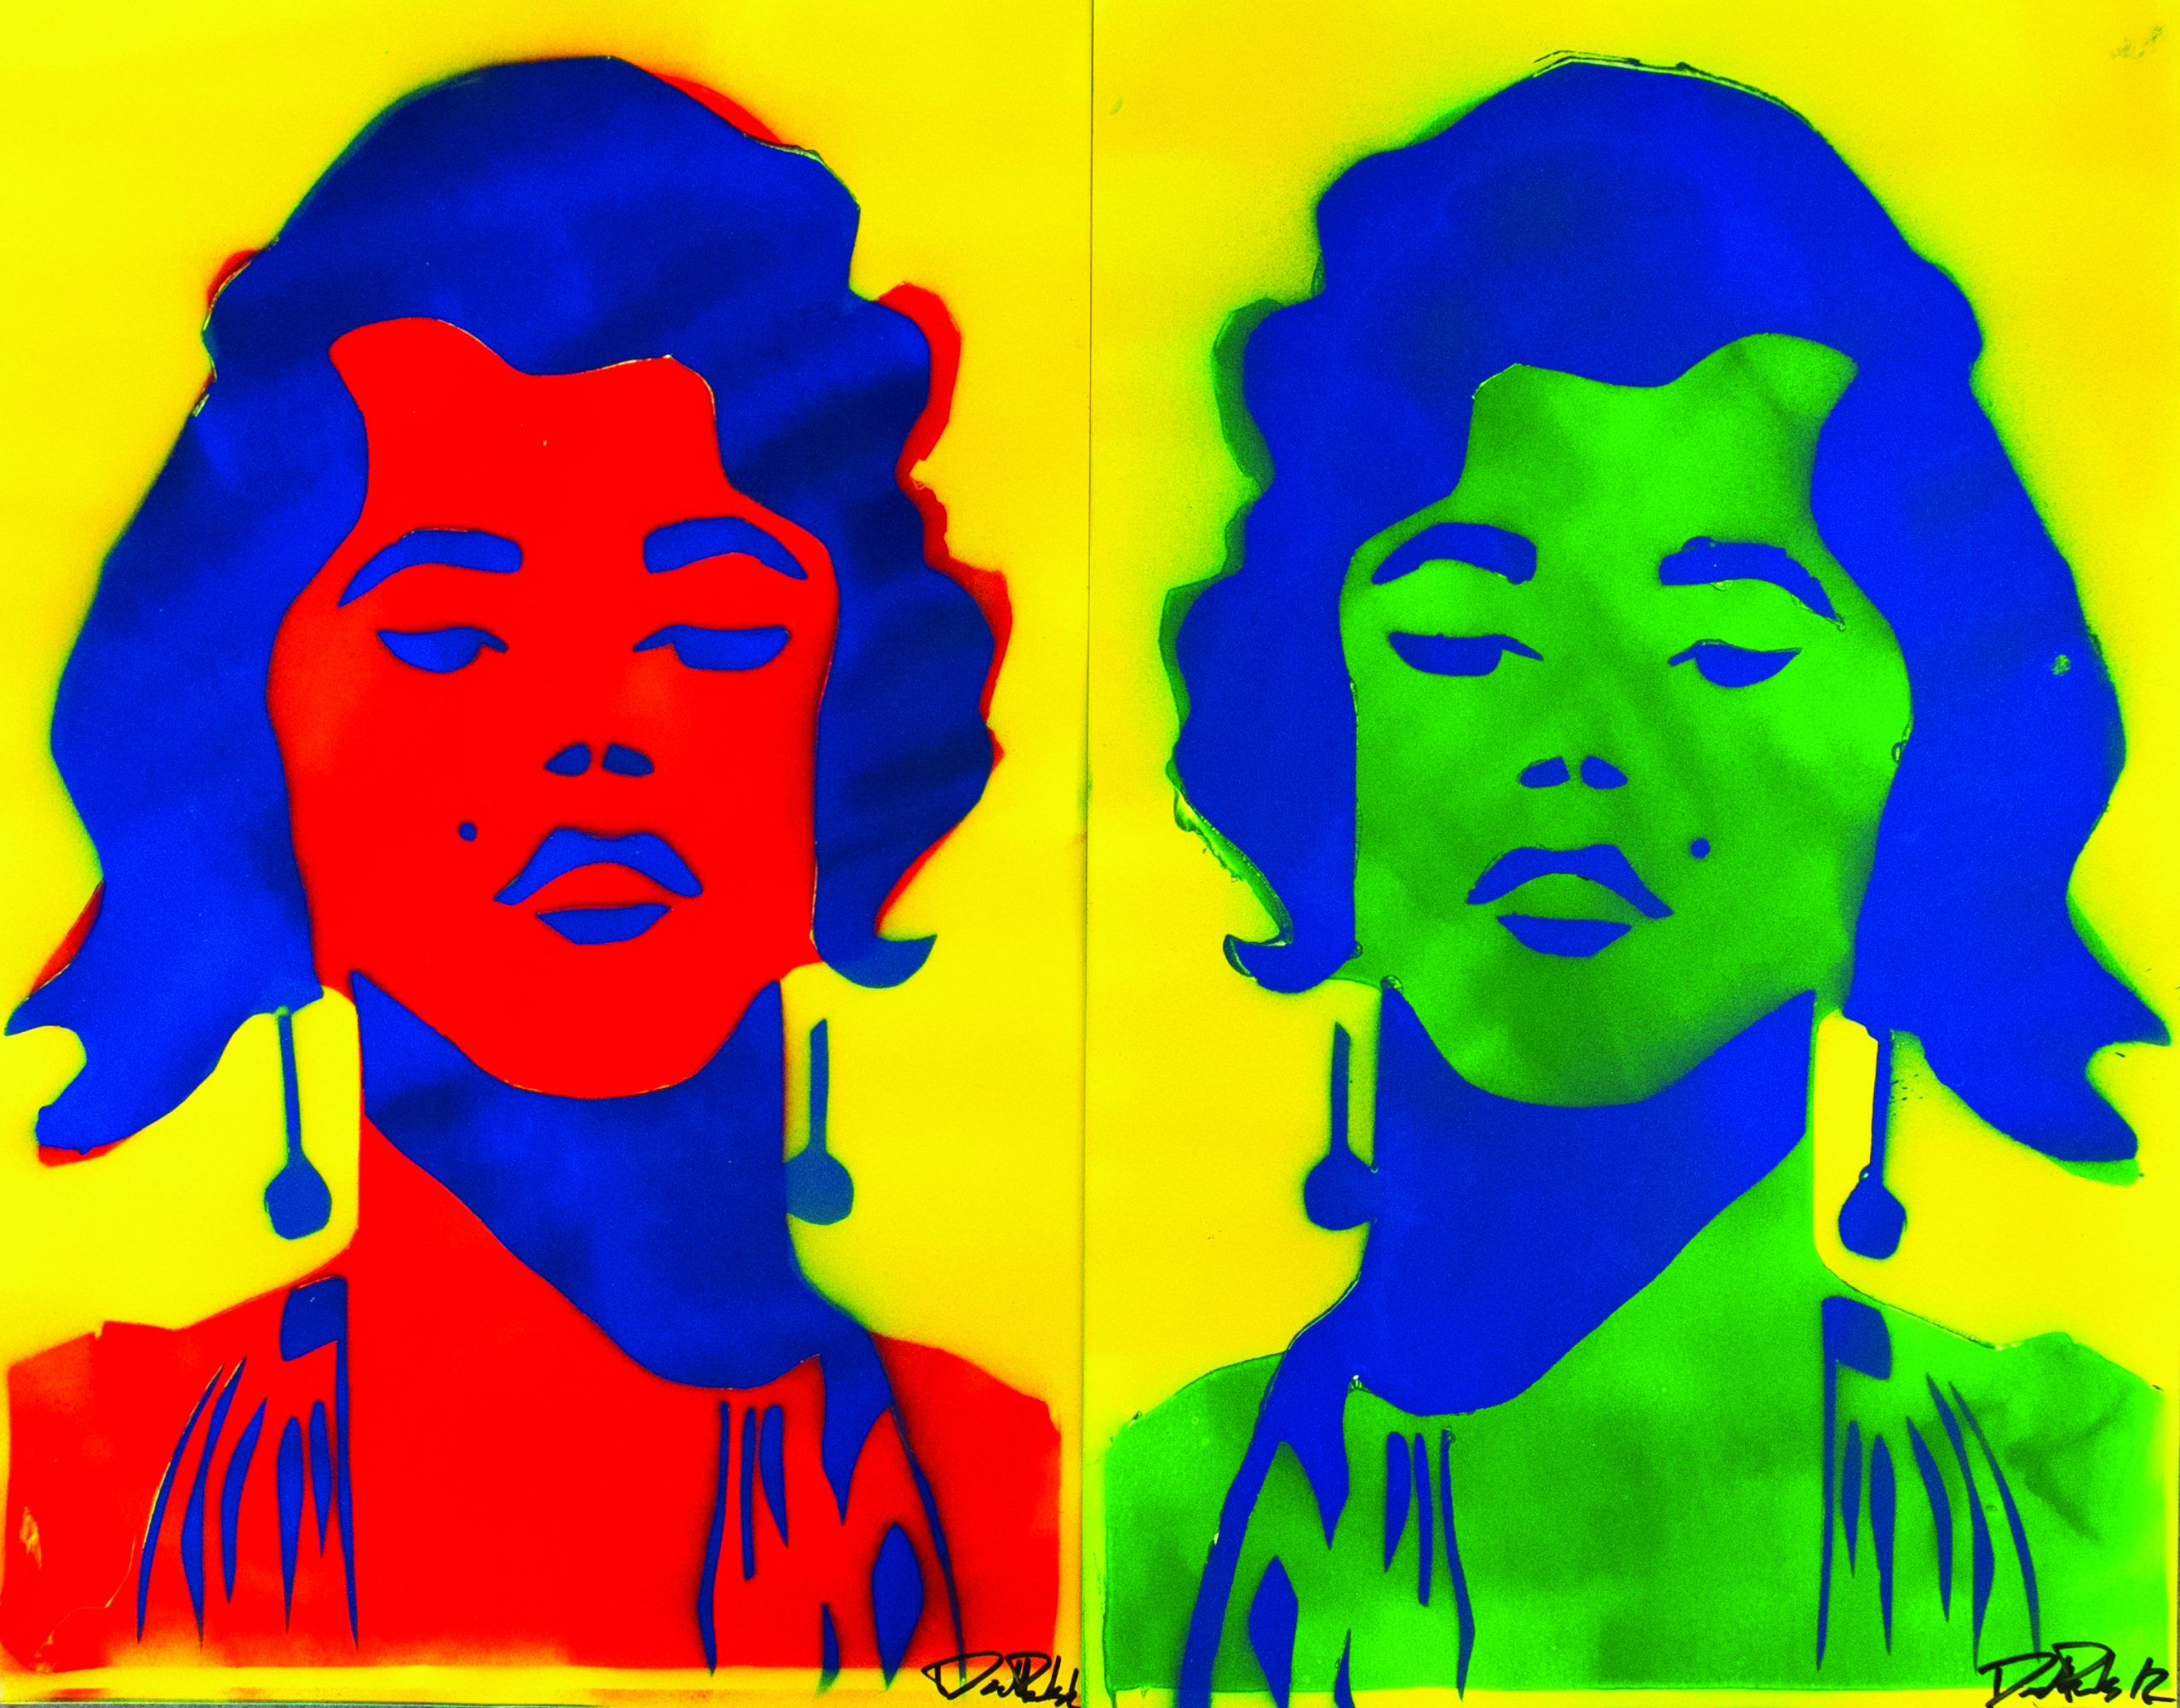 David Pauls' pop art featuring two portraits of a woman